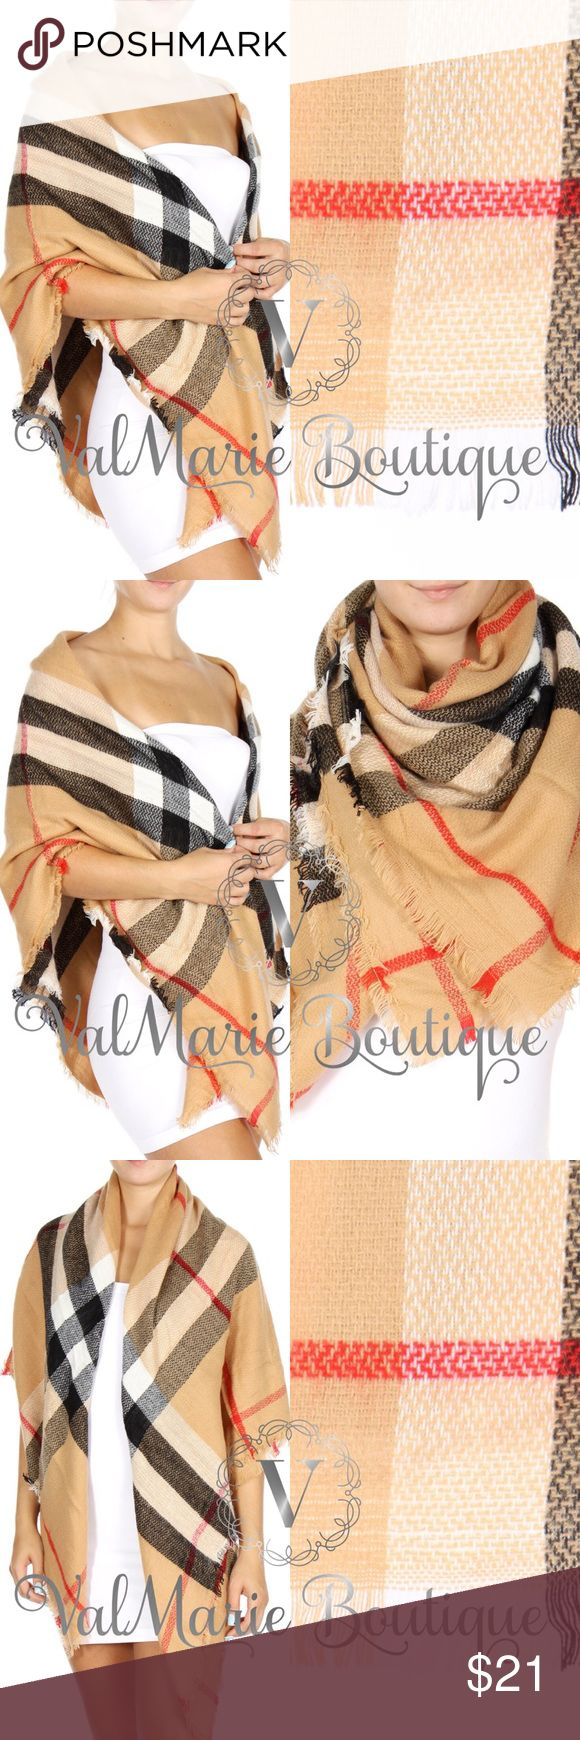 Oversized Plaid Camel Scarf Get this MEGA SOFT luxurious oversized Plaid check scarf now! Feels so elegant on your skin. Wear it as a scarf, shawl or wrap coverup. Perfect for Fall or Winter! One size fits all! ValMarie Accessories Scarves & Wraps